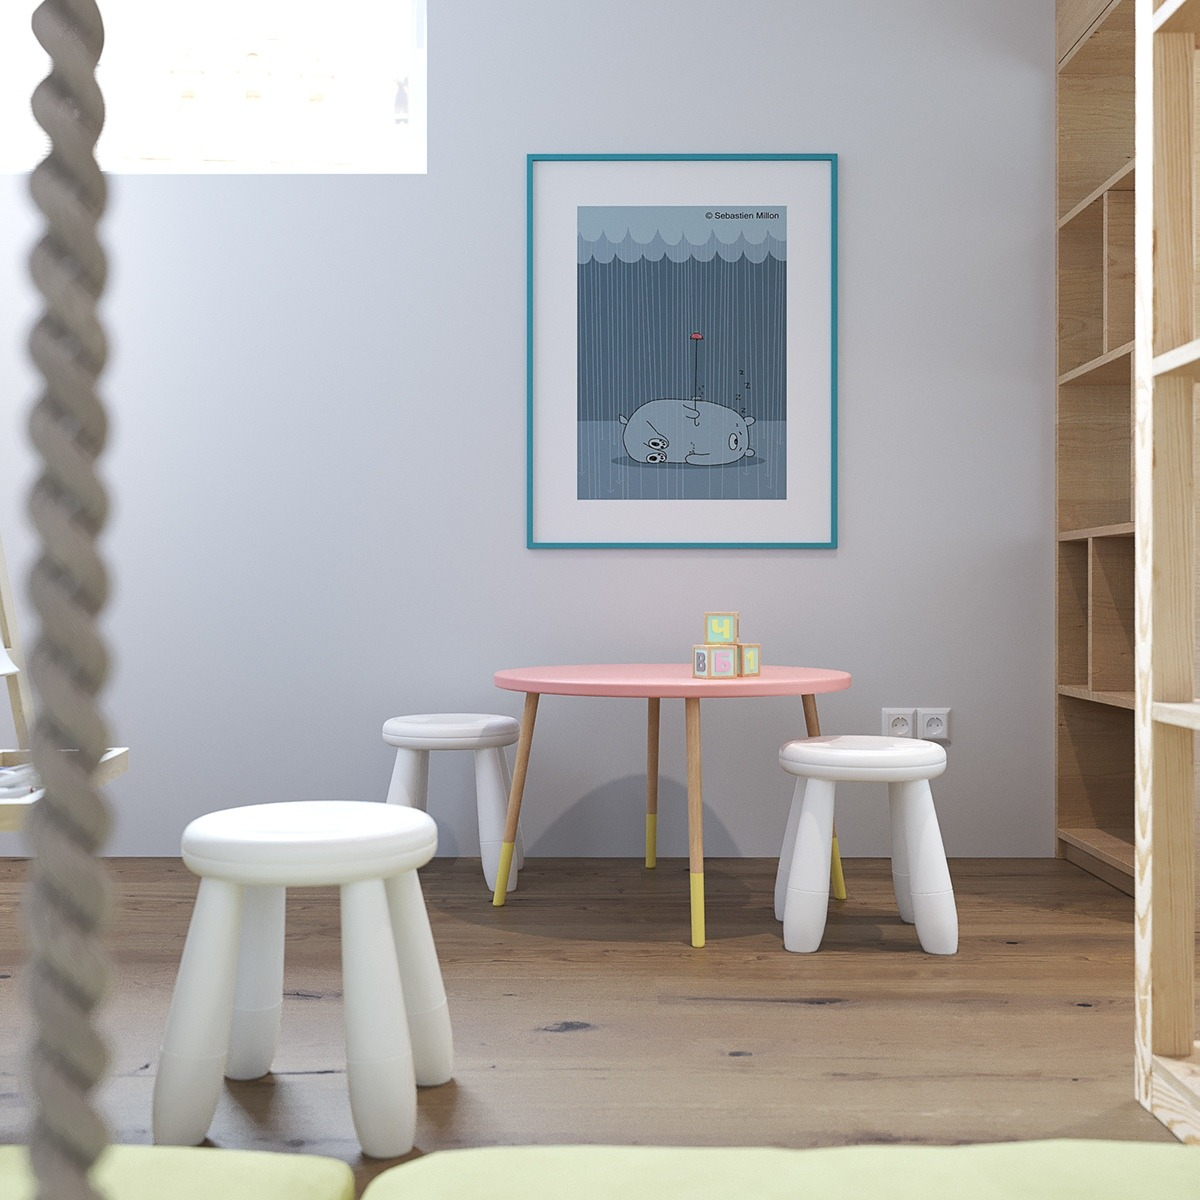 Childrens Playroom White Benches Wood Shelving - 2 stunningly beautiful homes decorated in modern scandinavian style